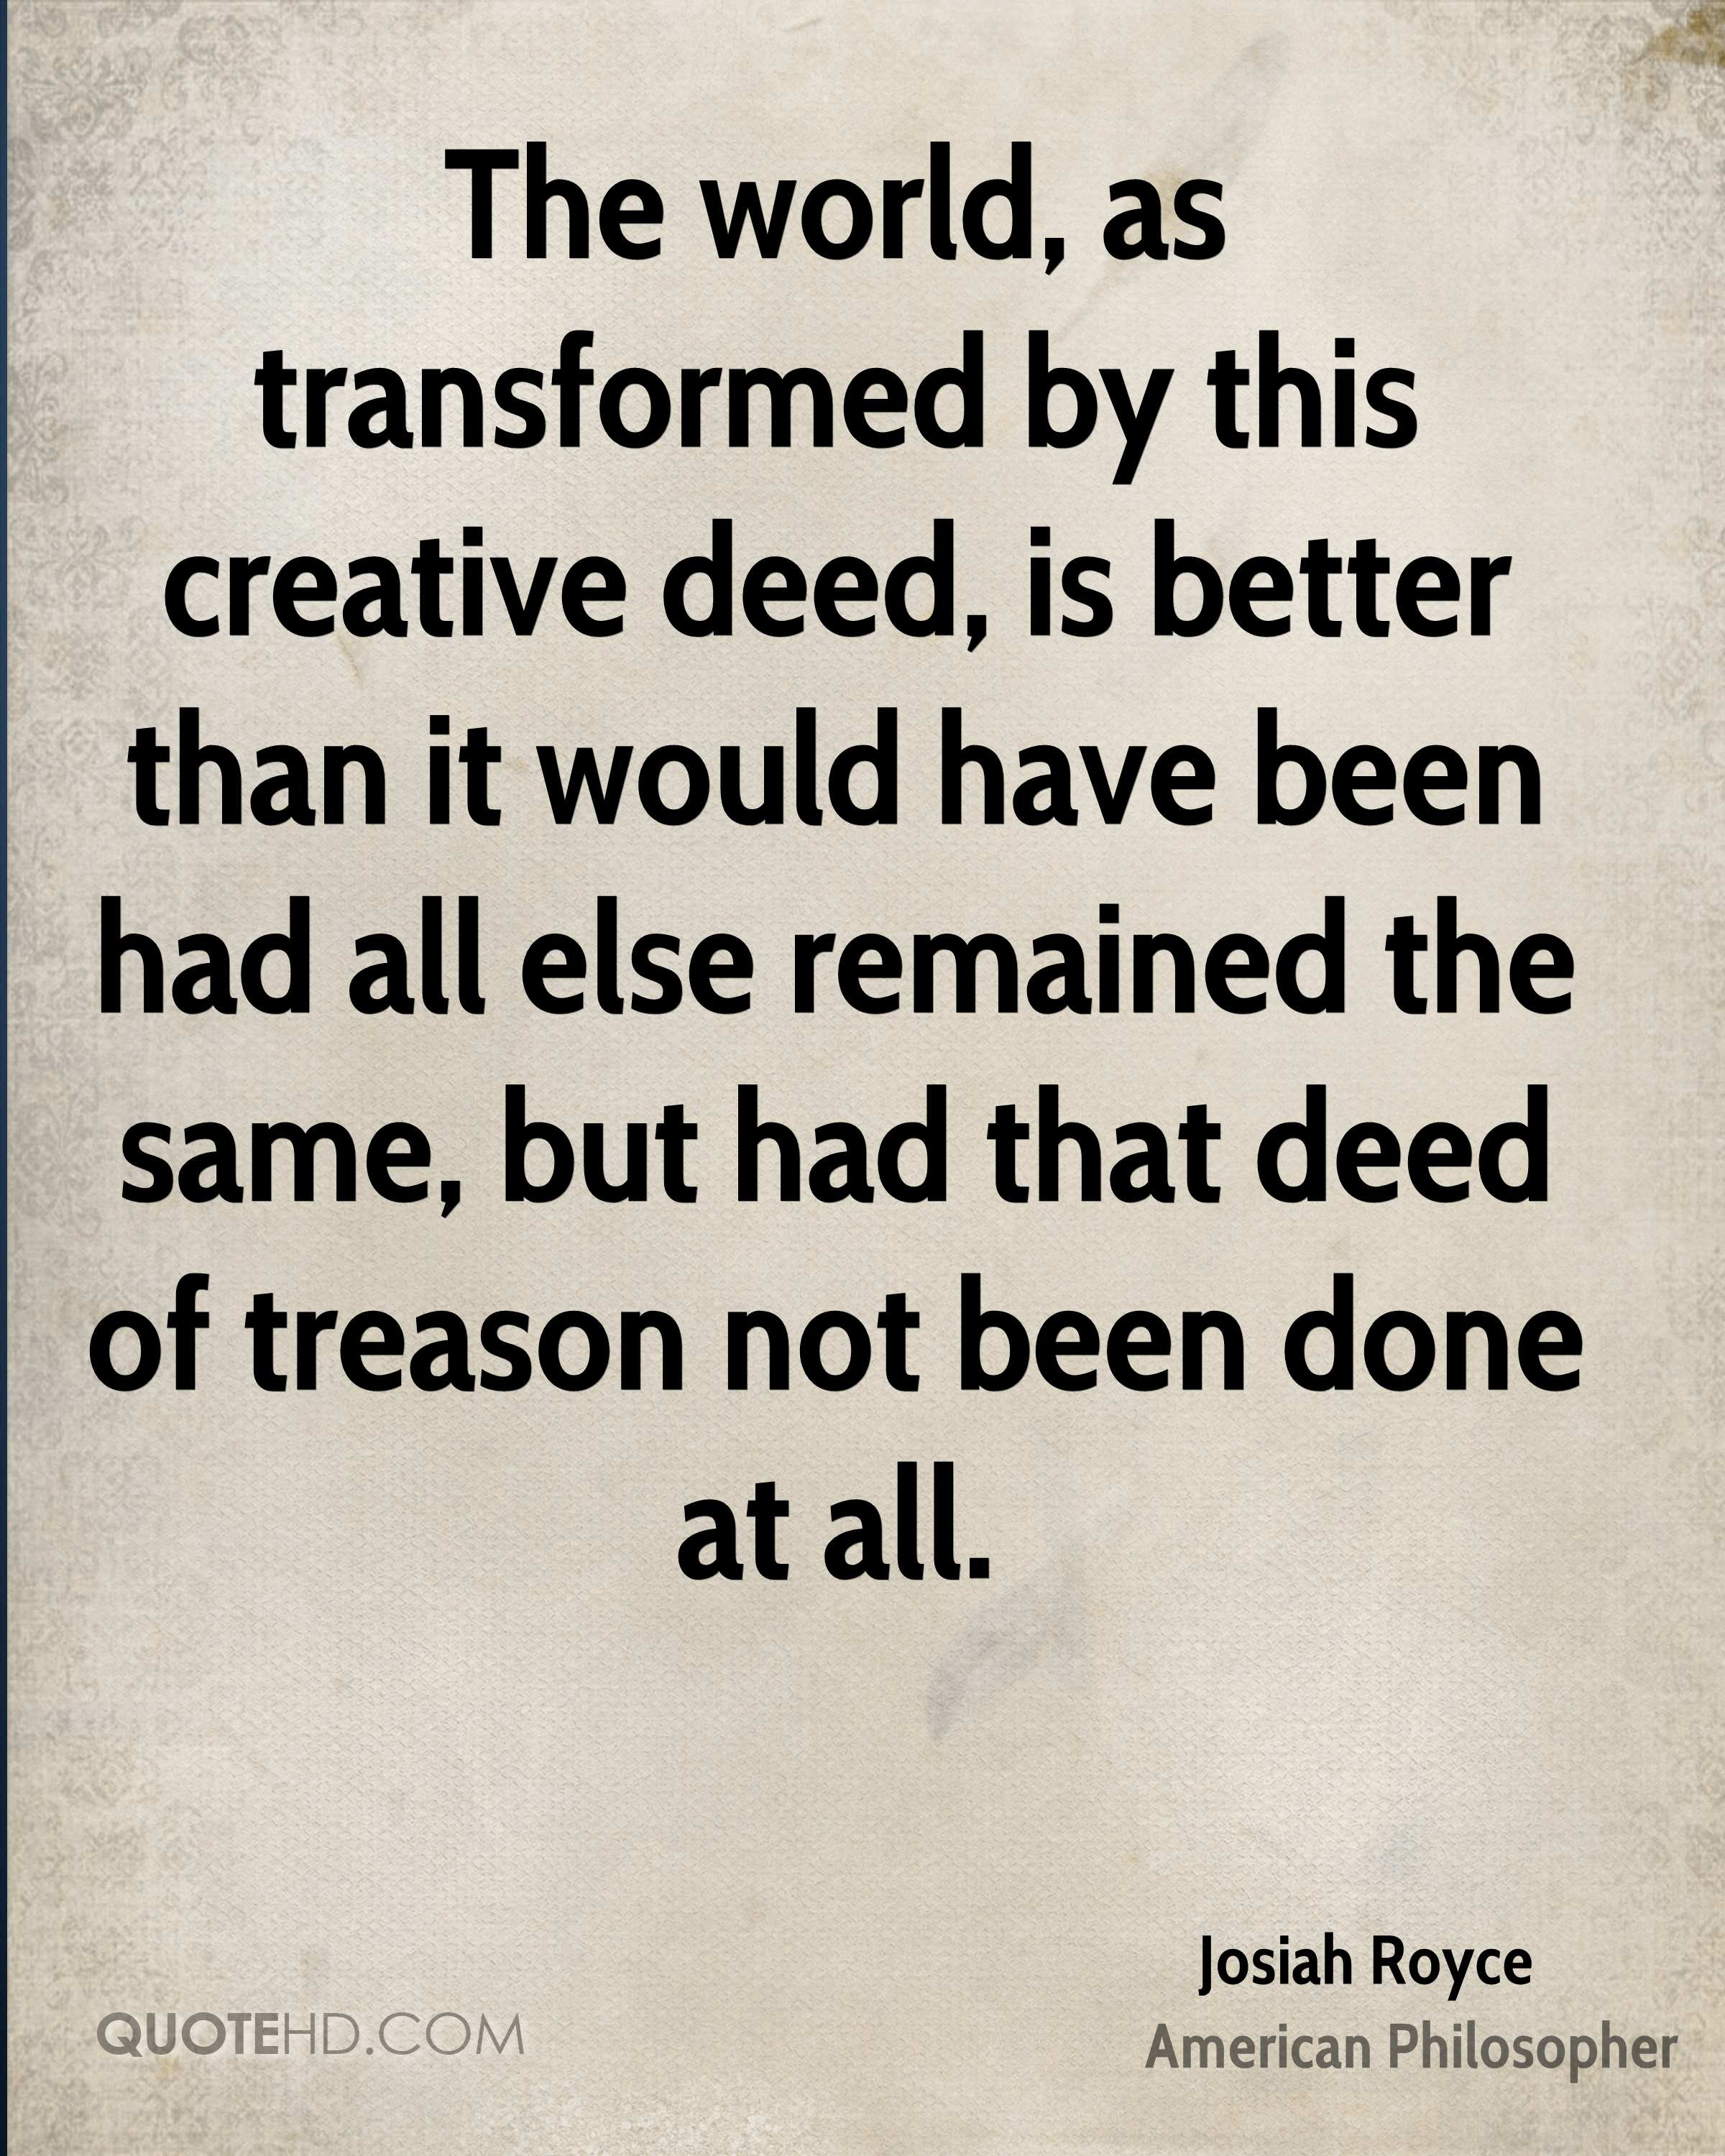 The world, as transformed by this creative deed, is better than it would have been had all else remained the same, but had that deed of treason not been done at all.